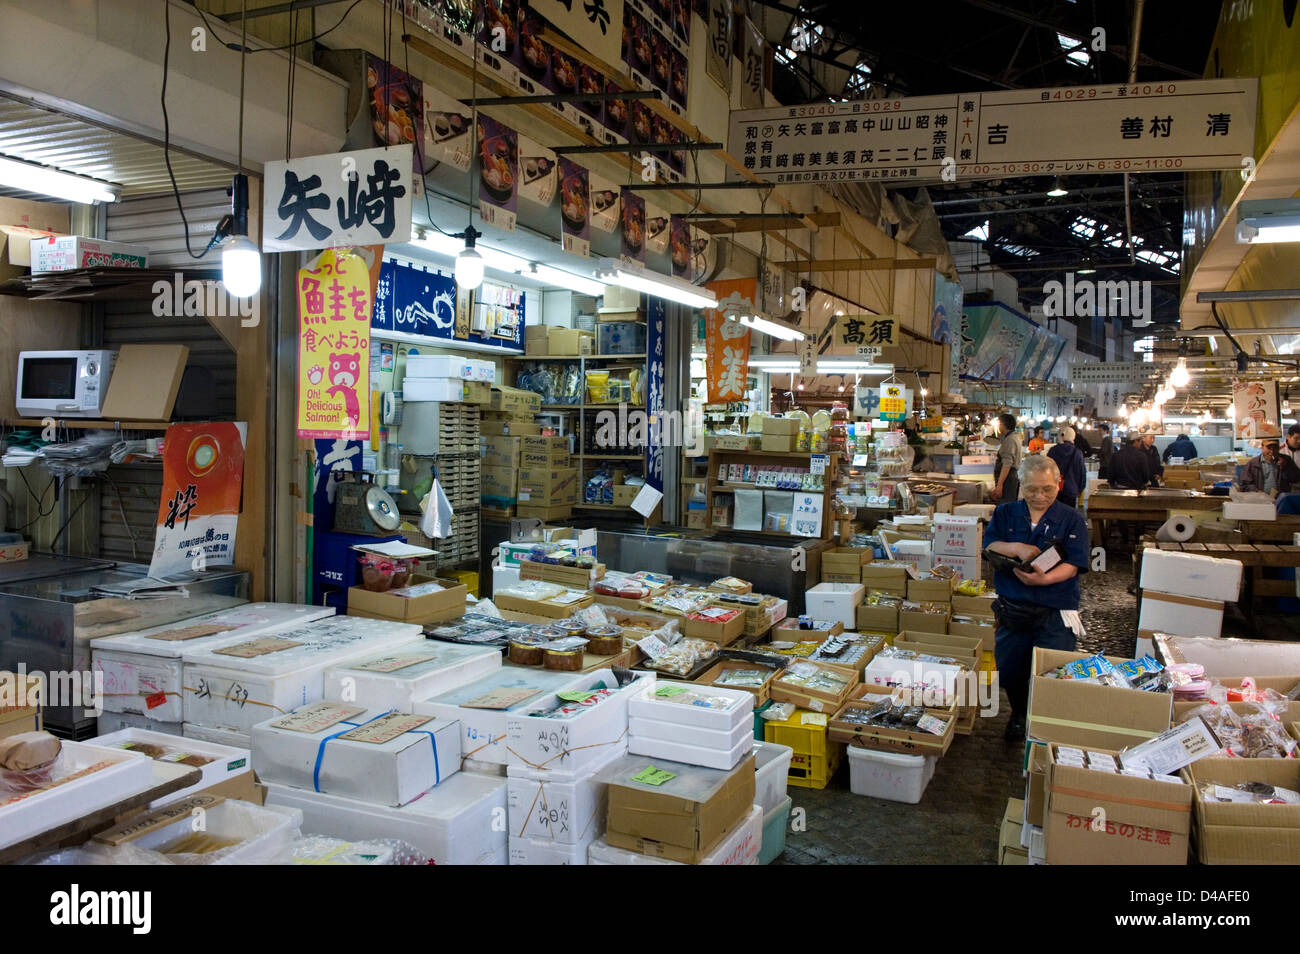 Narrow aisles between crowded retail sales stalls at for Wholesale fish market